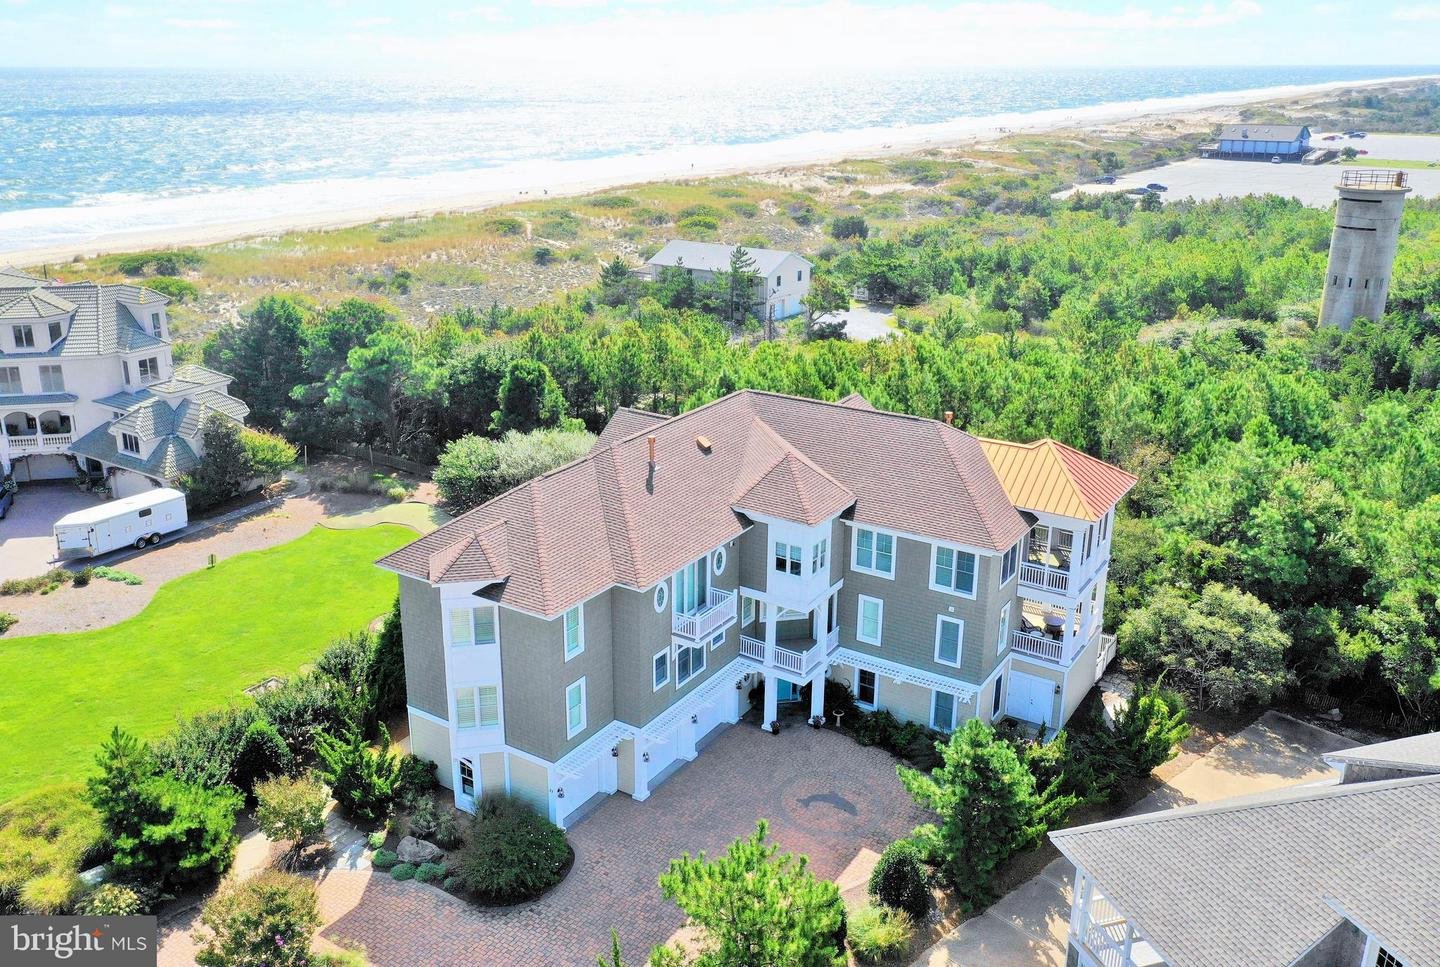 1002293530-300720129237-2018-09-25-15-08-25 31 Hall Ave | Rehoboth Beach, De Real Estate For Sale | MLS# 1002293530  - Suzanne Macnab